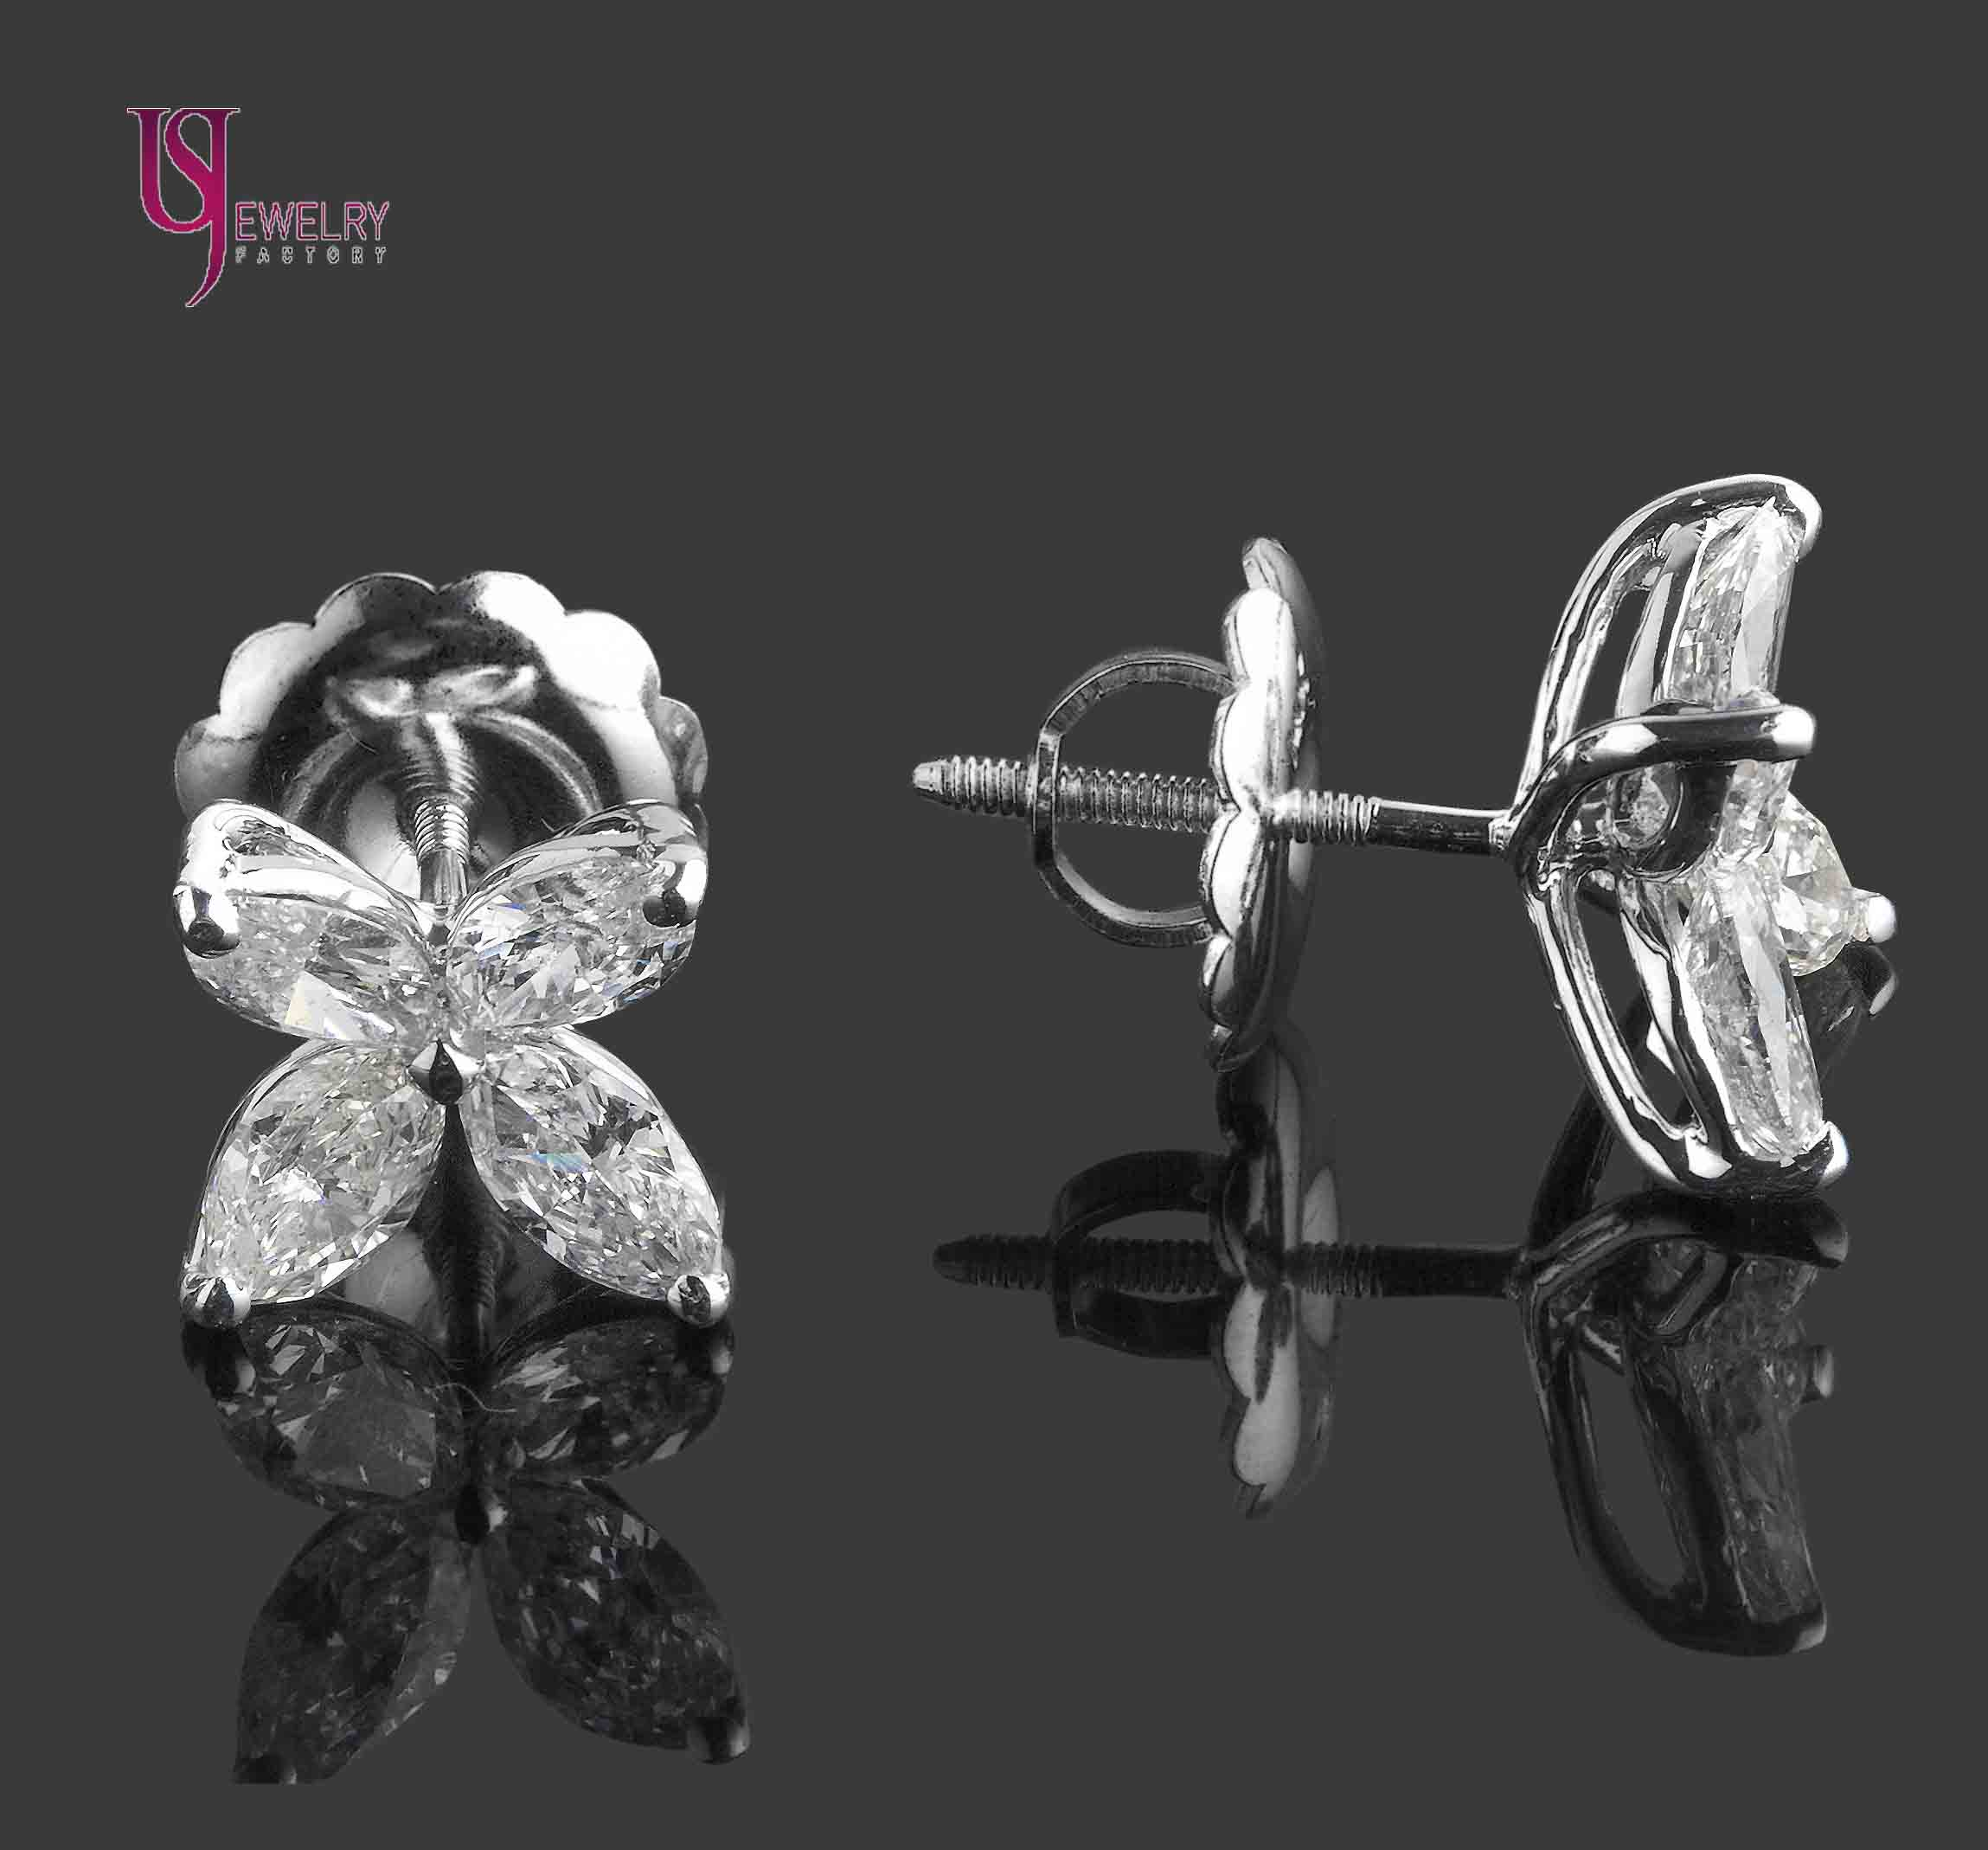 floral logo stud de carat diamond white cut gold itm marquise earrings studs screw backs